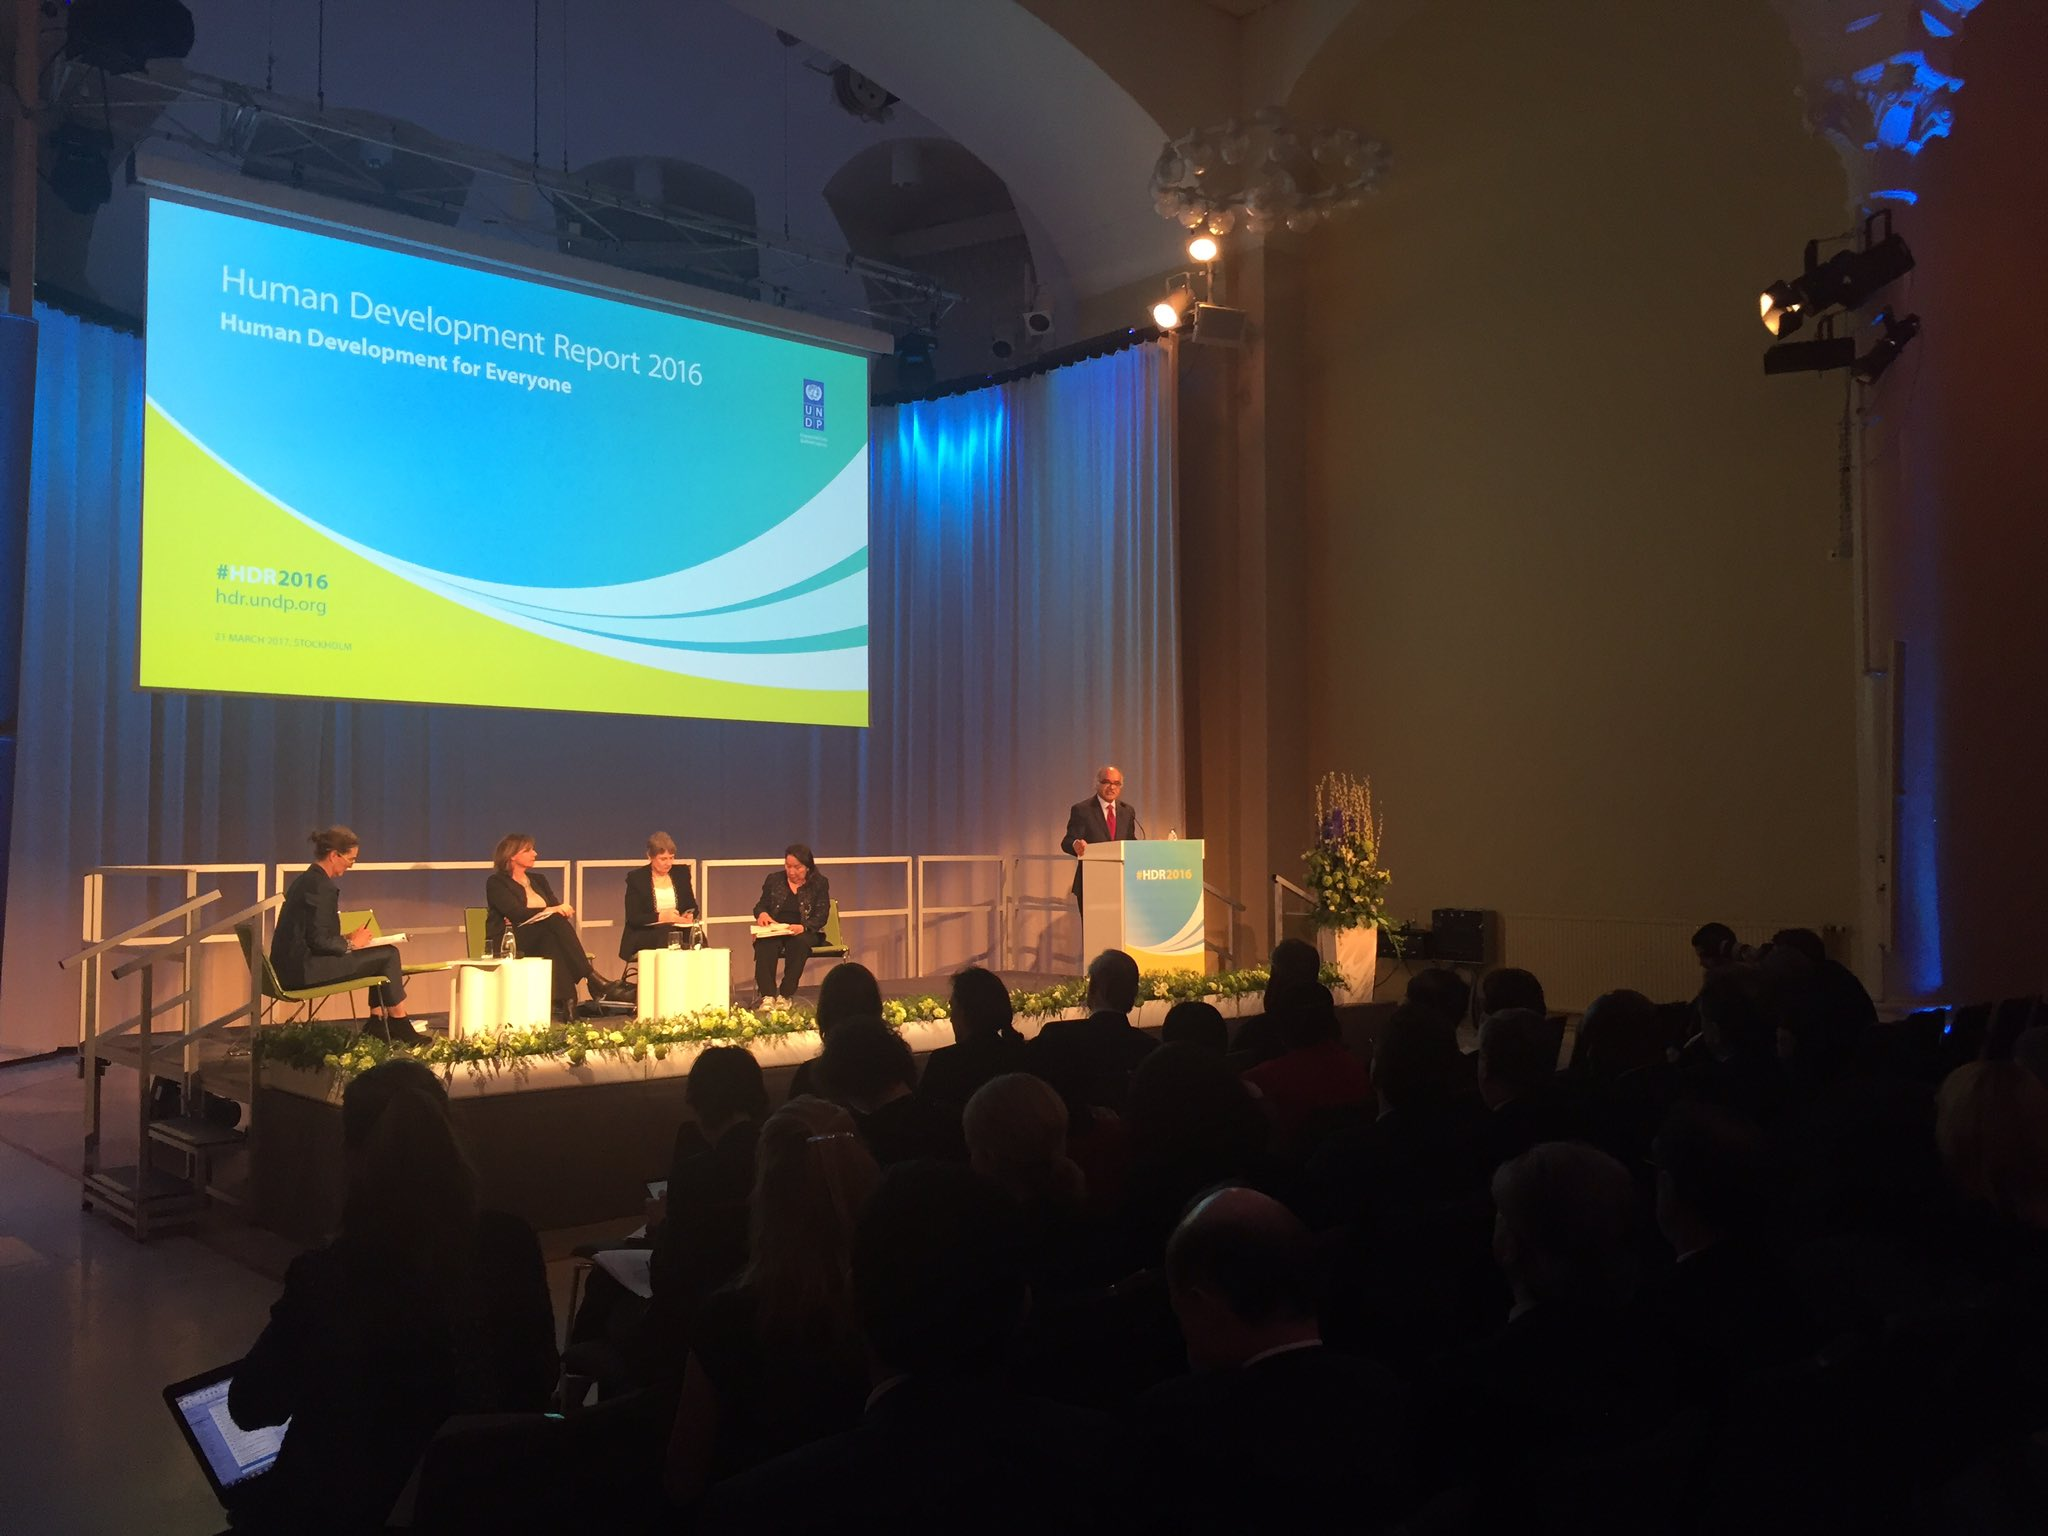 HDRO Director @SelimJahanUNDP  Every life counts, and every life is equly valuable. #HDR2016 Global Launch in Stockholm, Sweden https://t.co/E6XDJt4TZ2